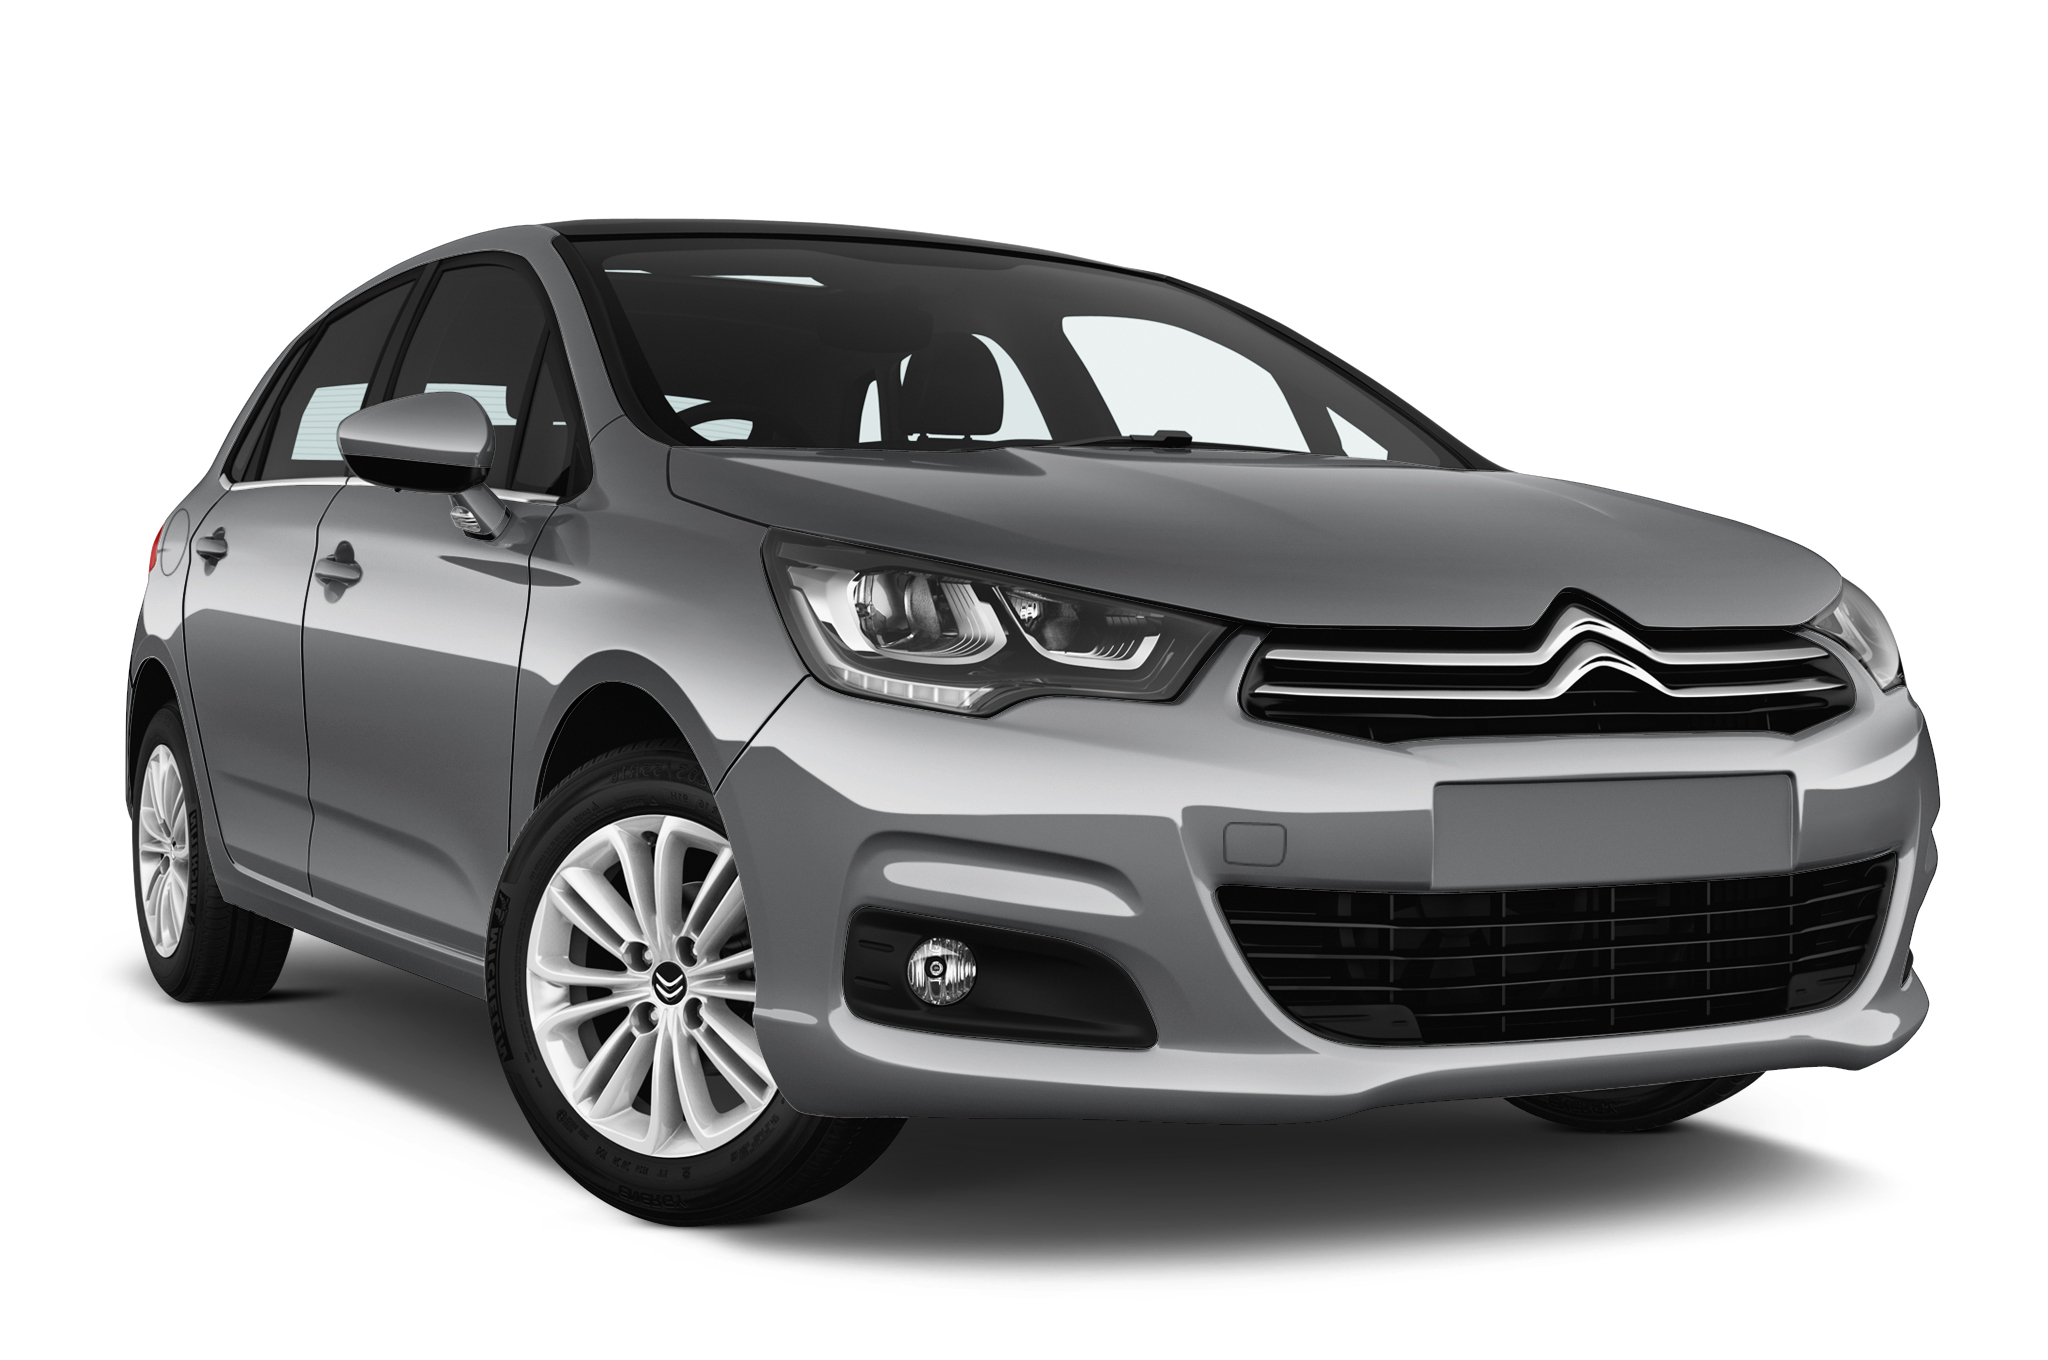 Citroen Car Rental at Marrakech Airport RAK, Morocco - RENTAL24H